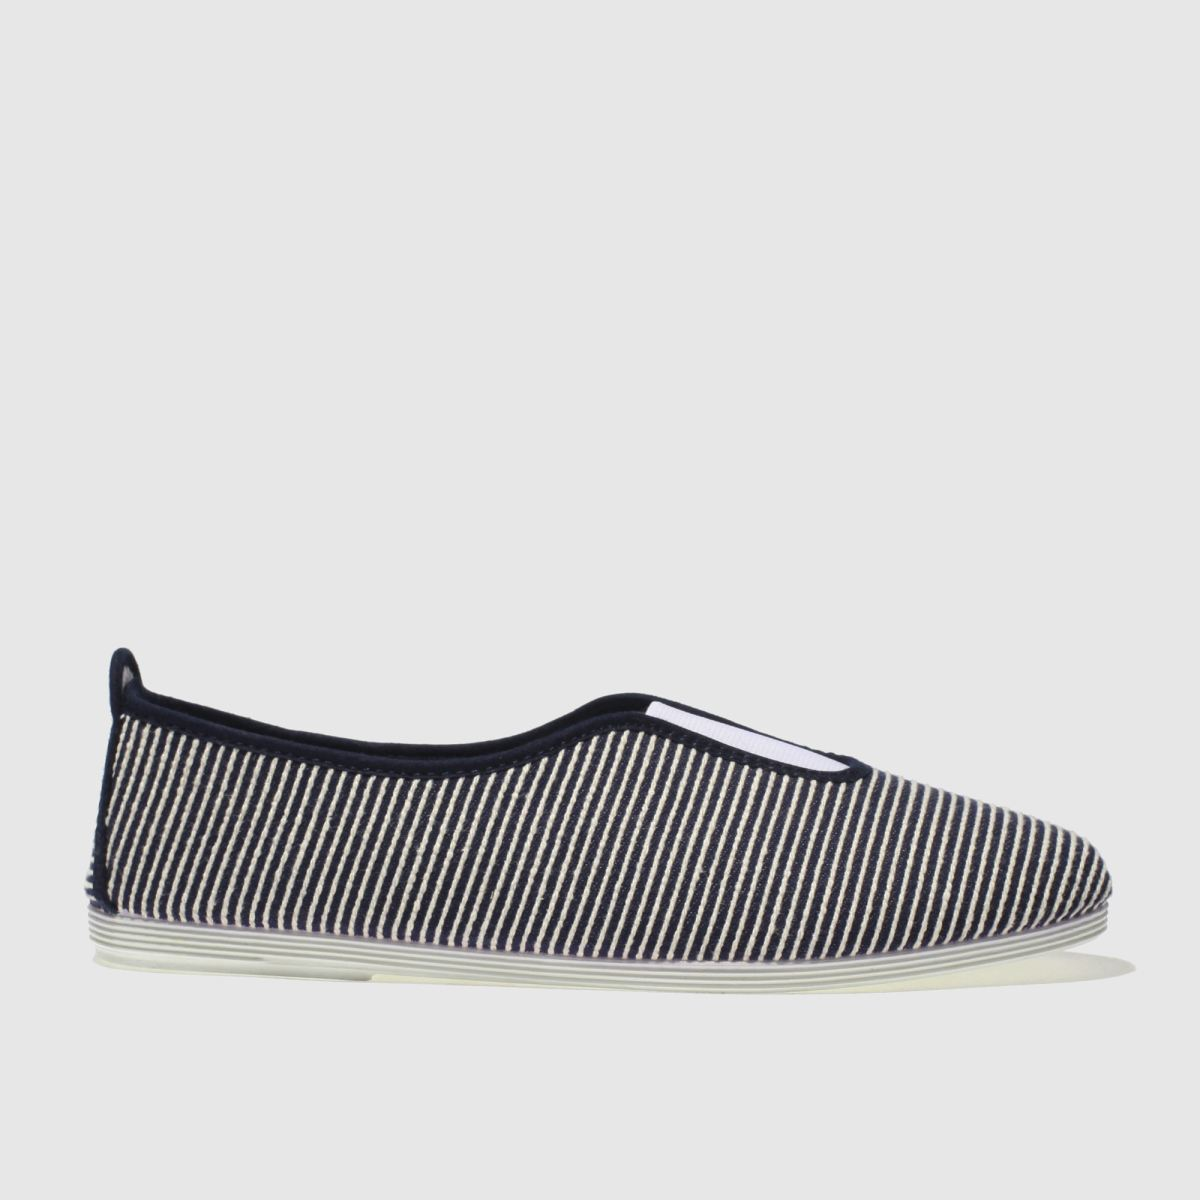 Flossy Flossy Navy & White Califa Flat Shoes